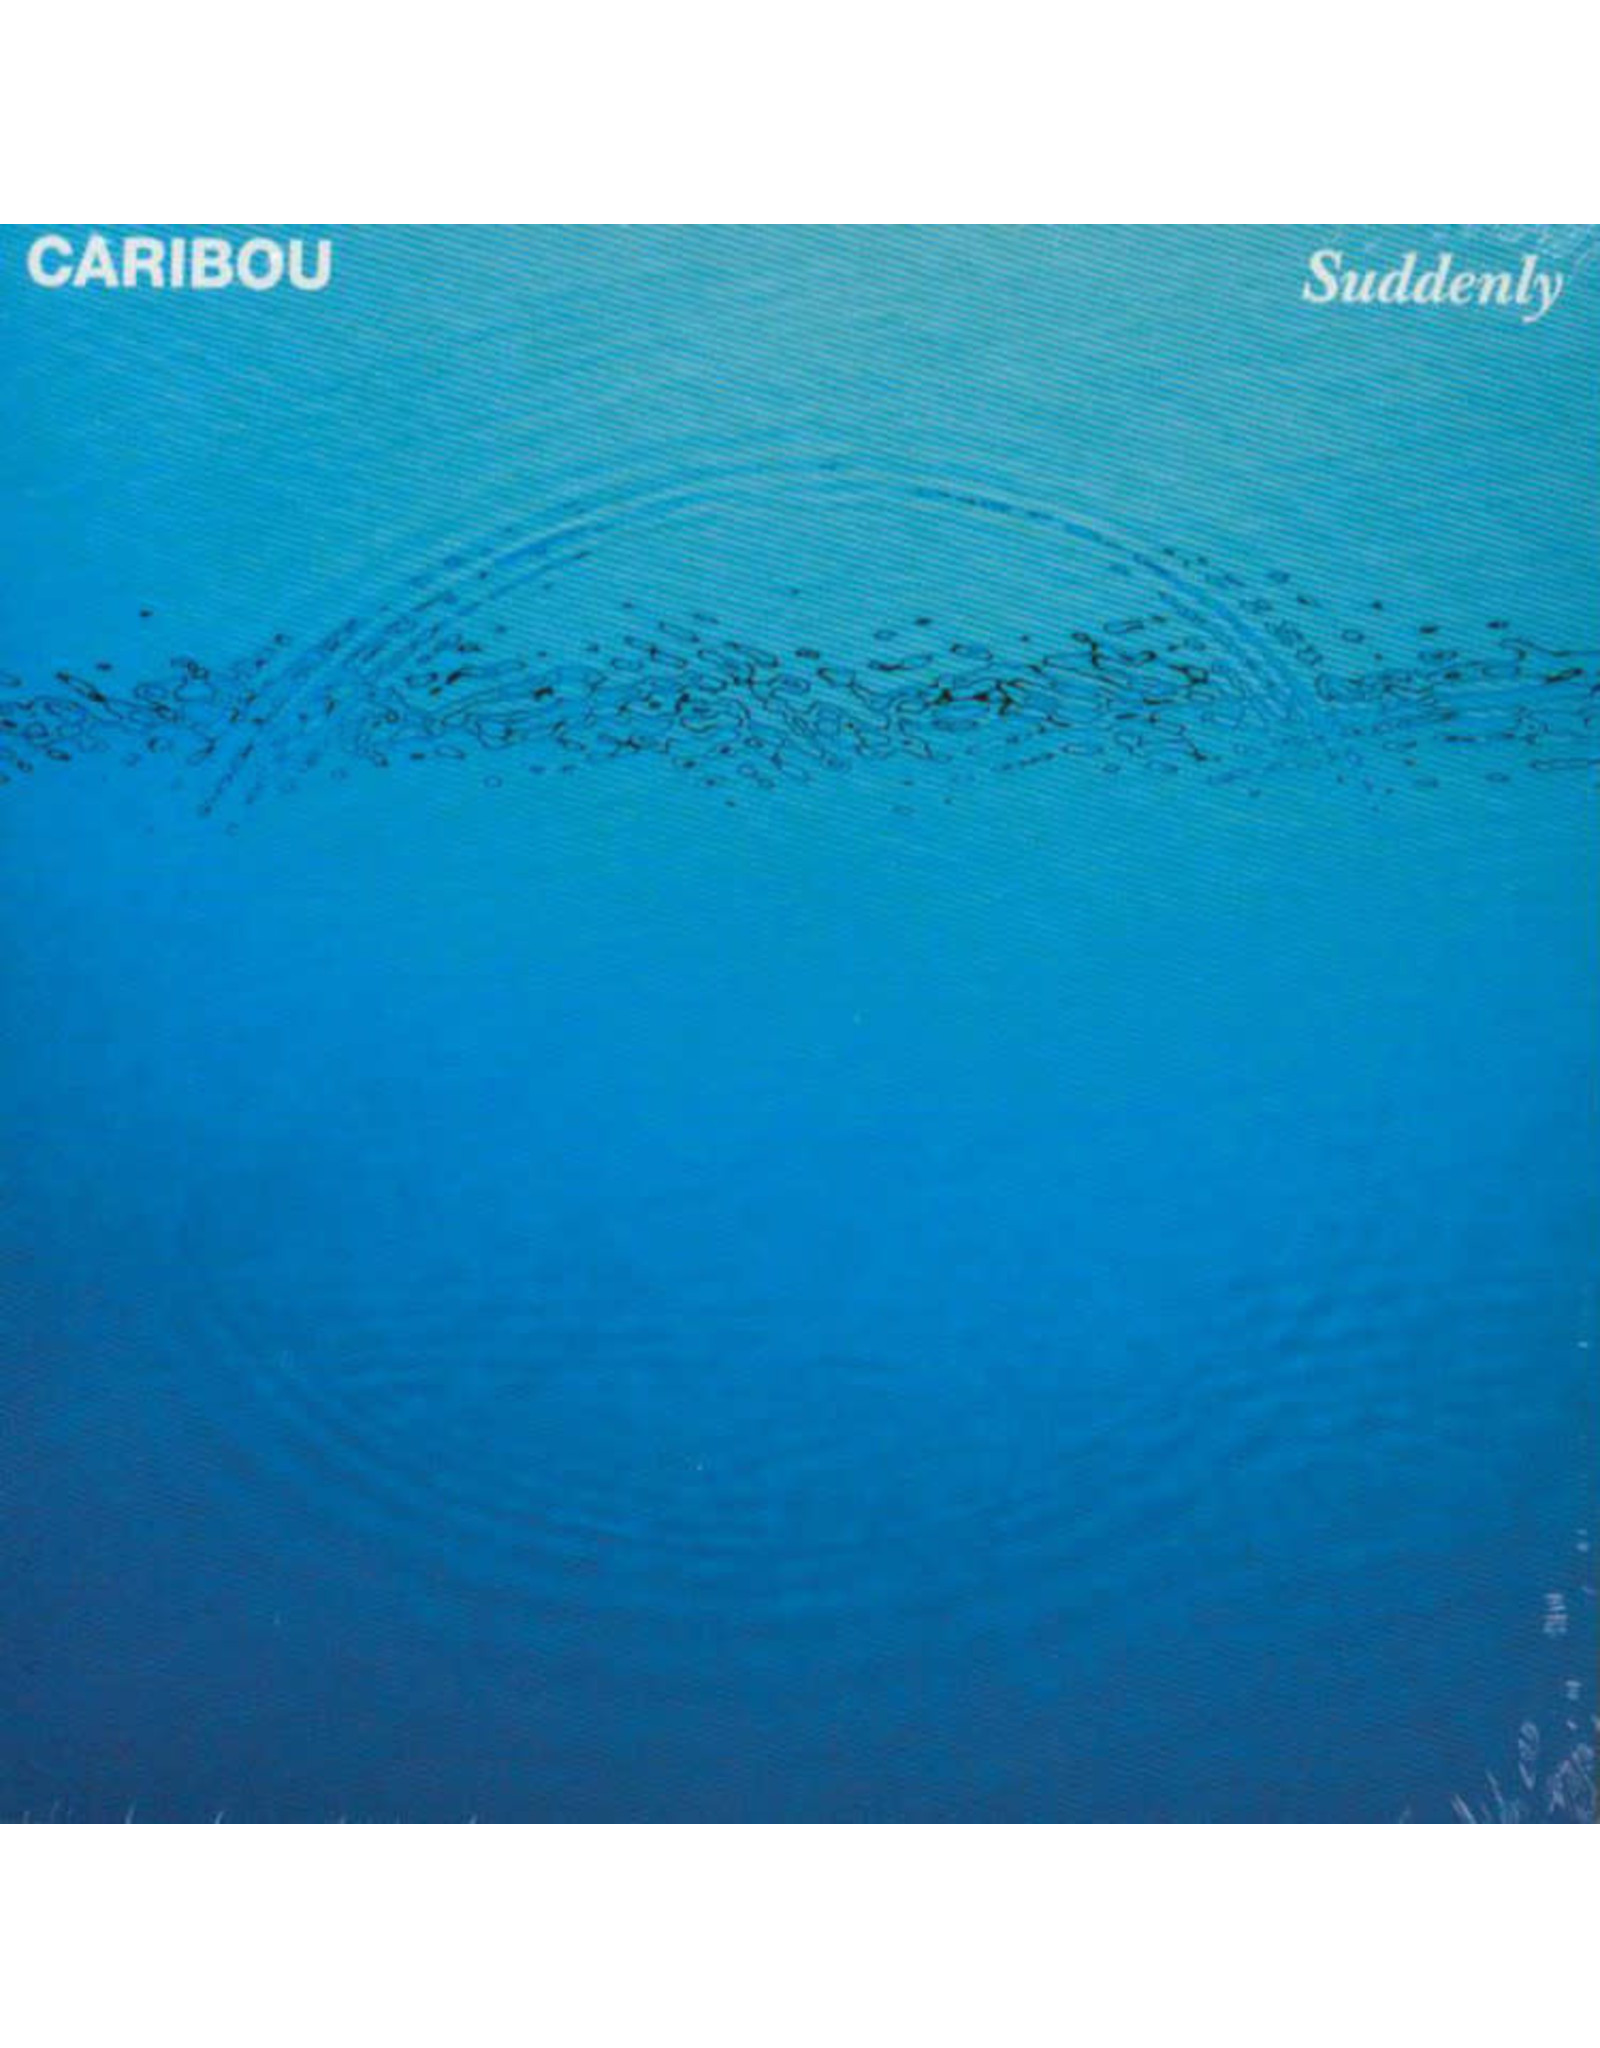 Caribou - Suddenly CD